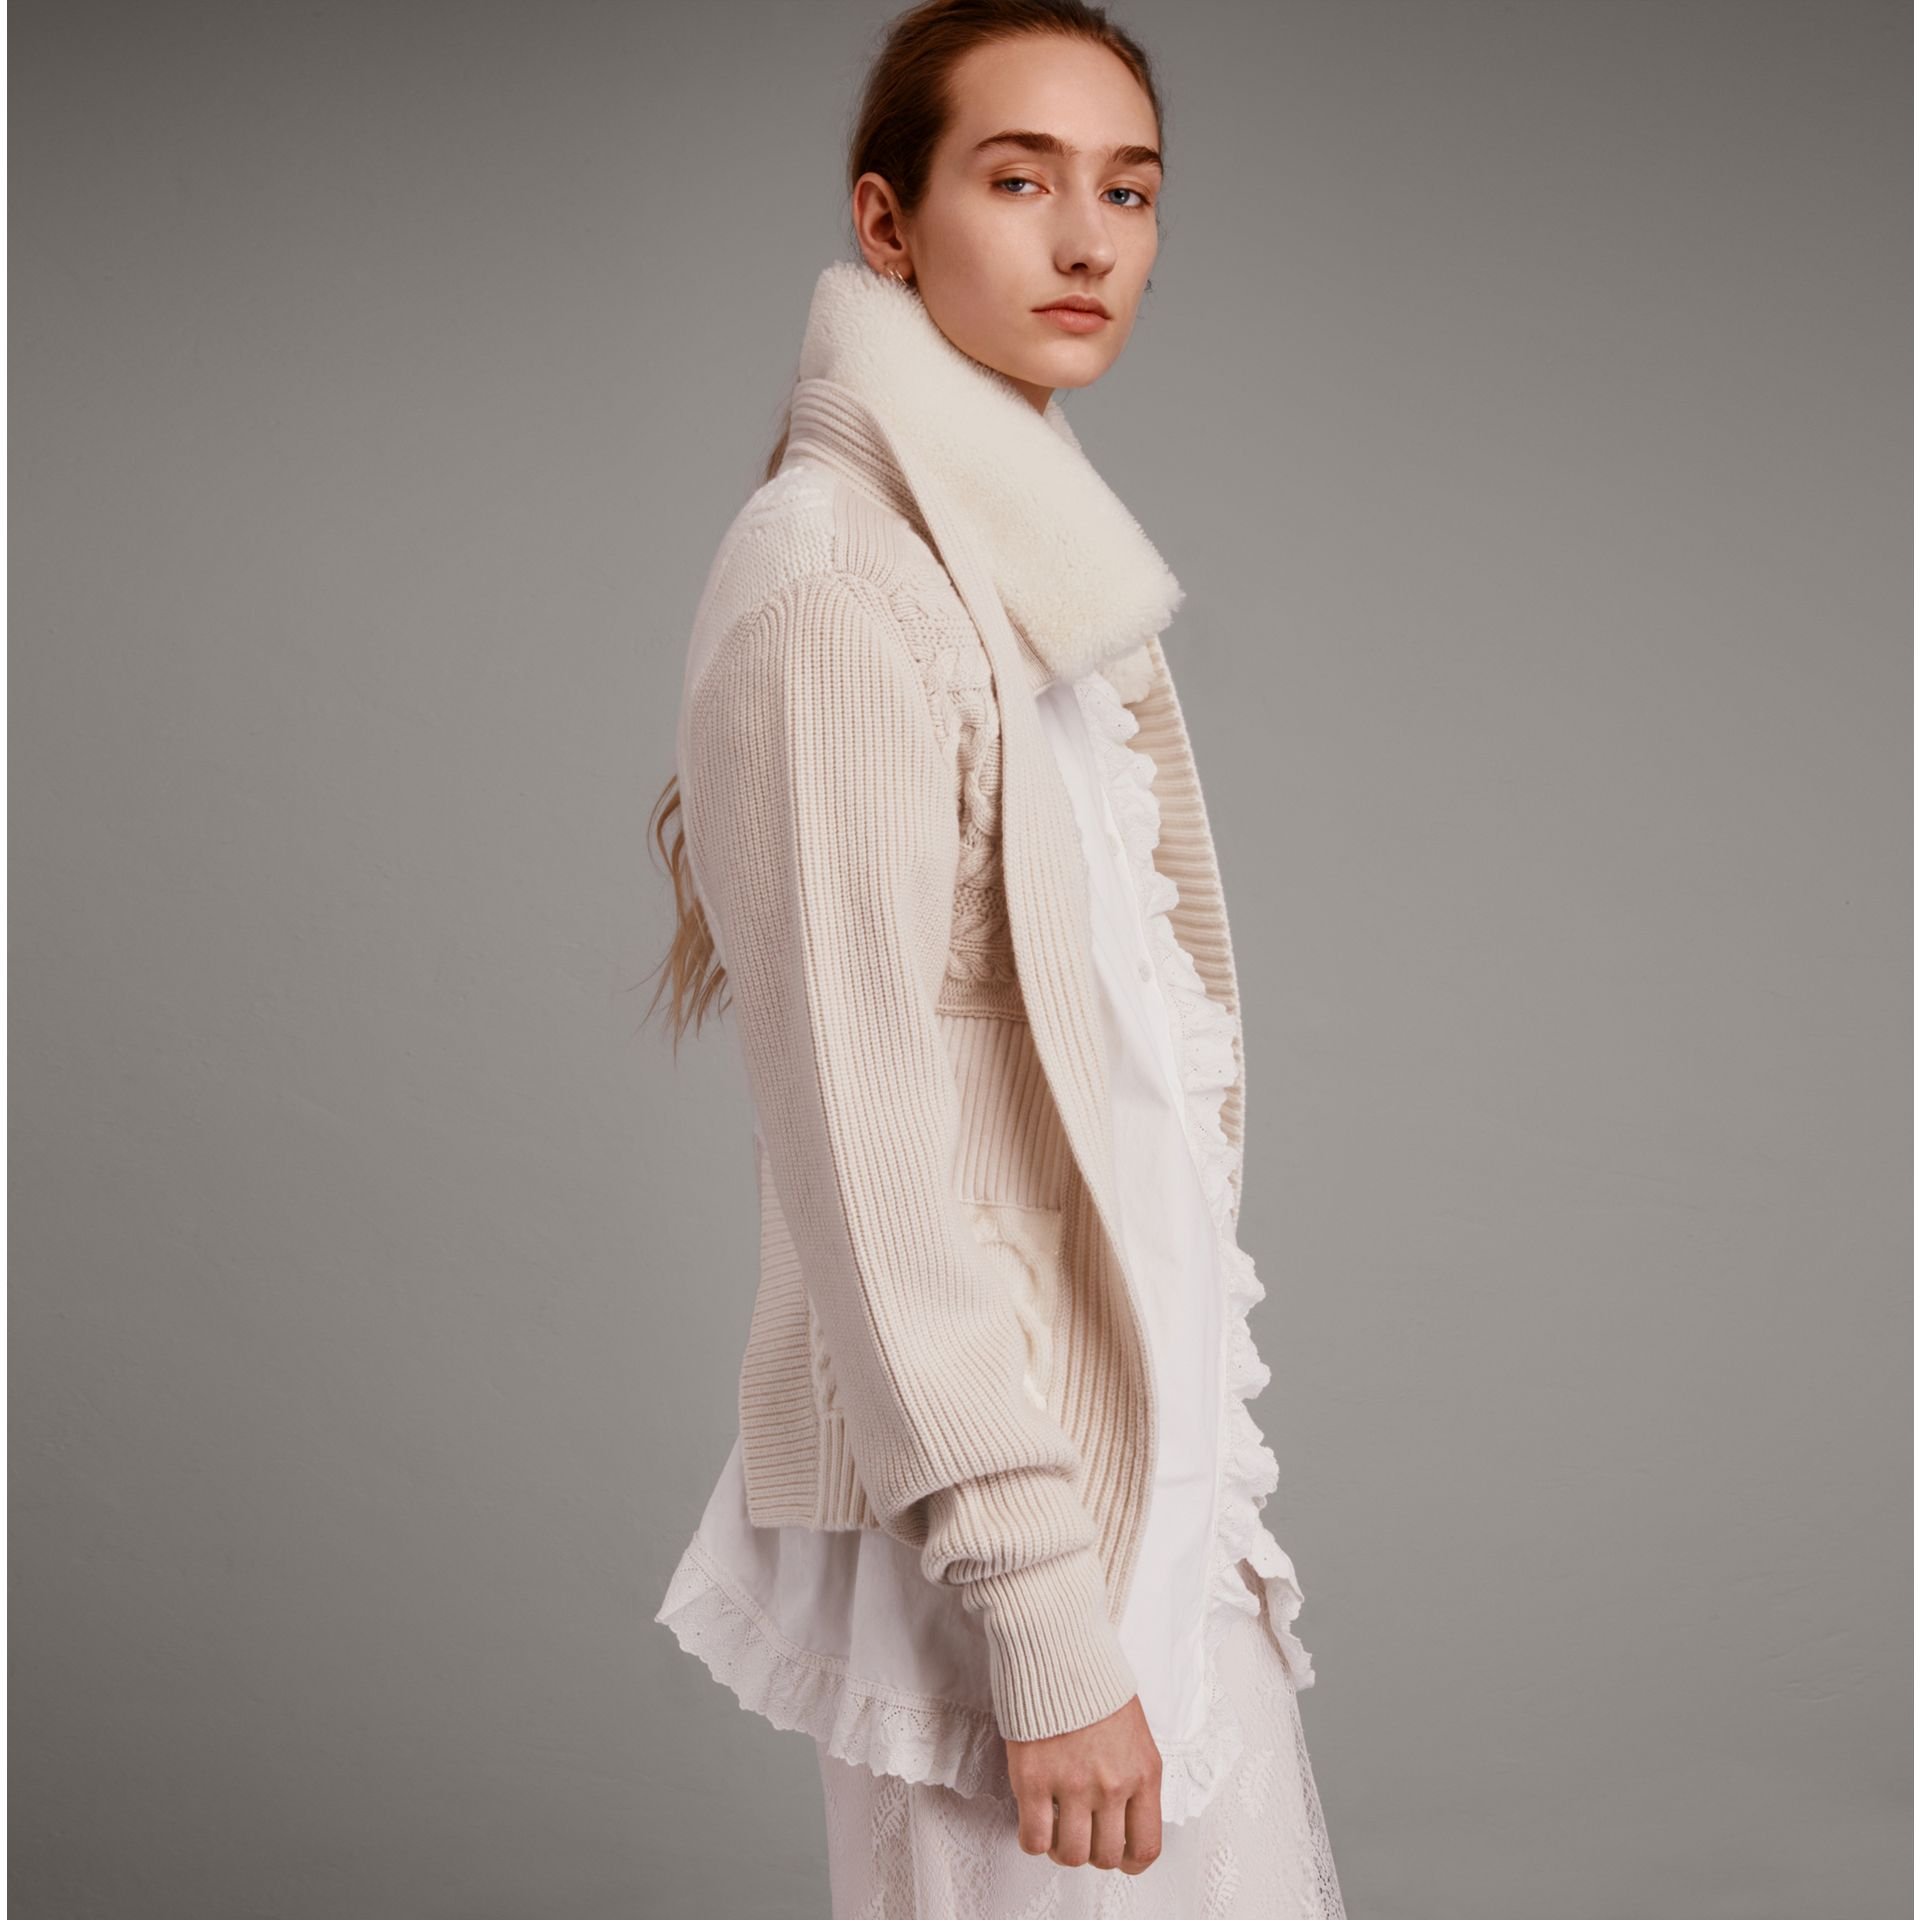 Shearling Collar Knitted Wool Cashmere Jacket in Natural White - Women | Burberry - gallery image 1